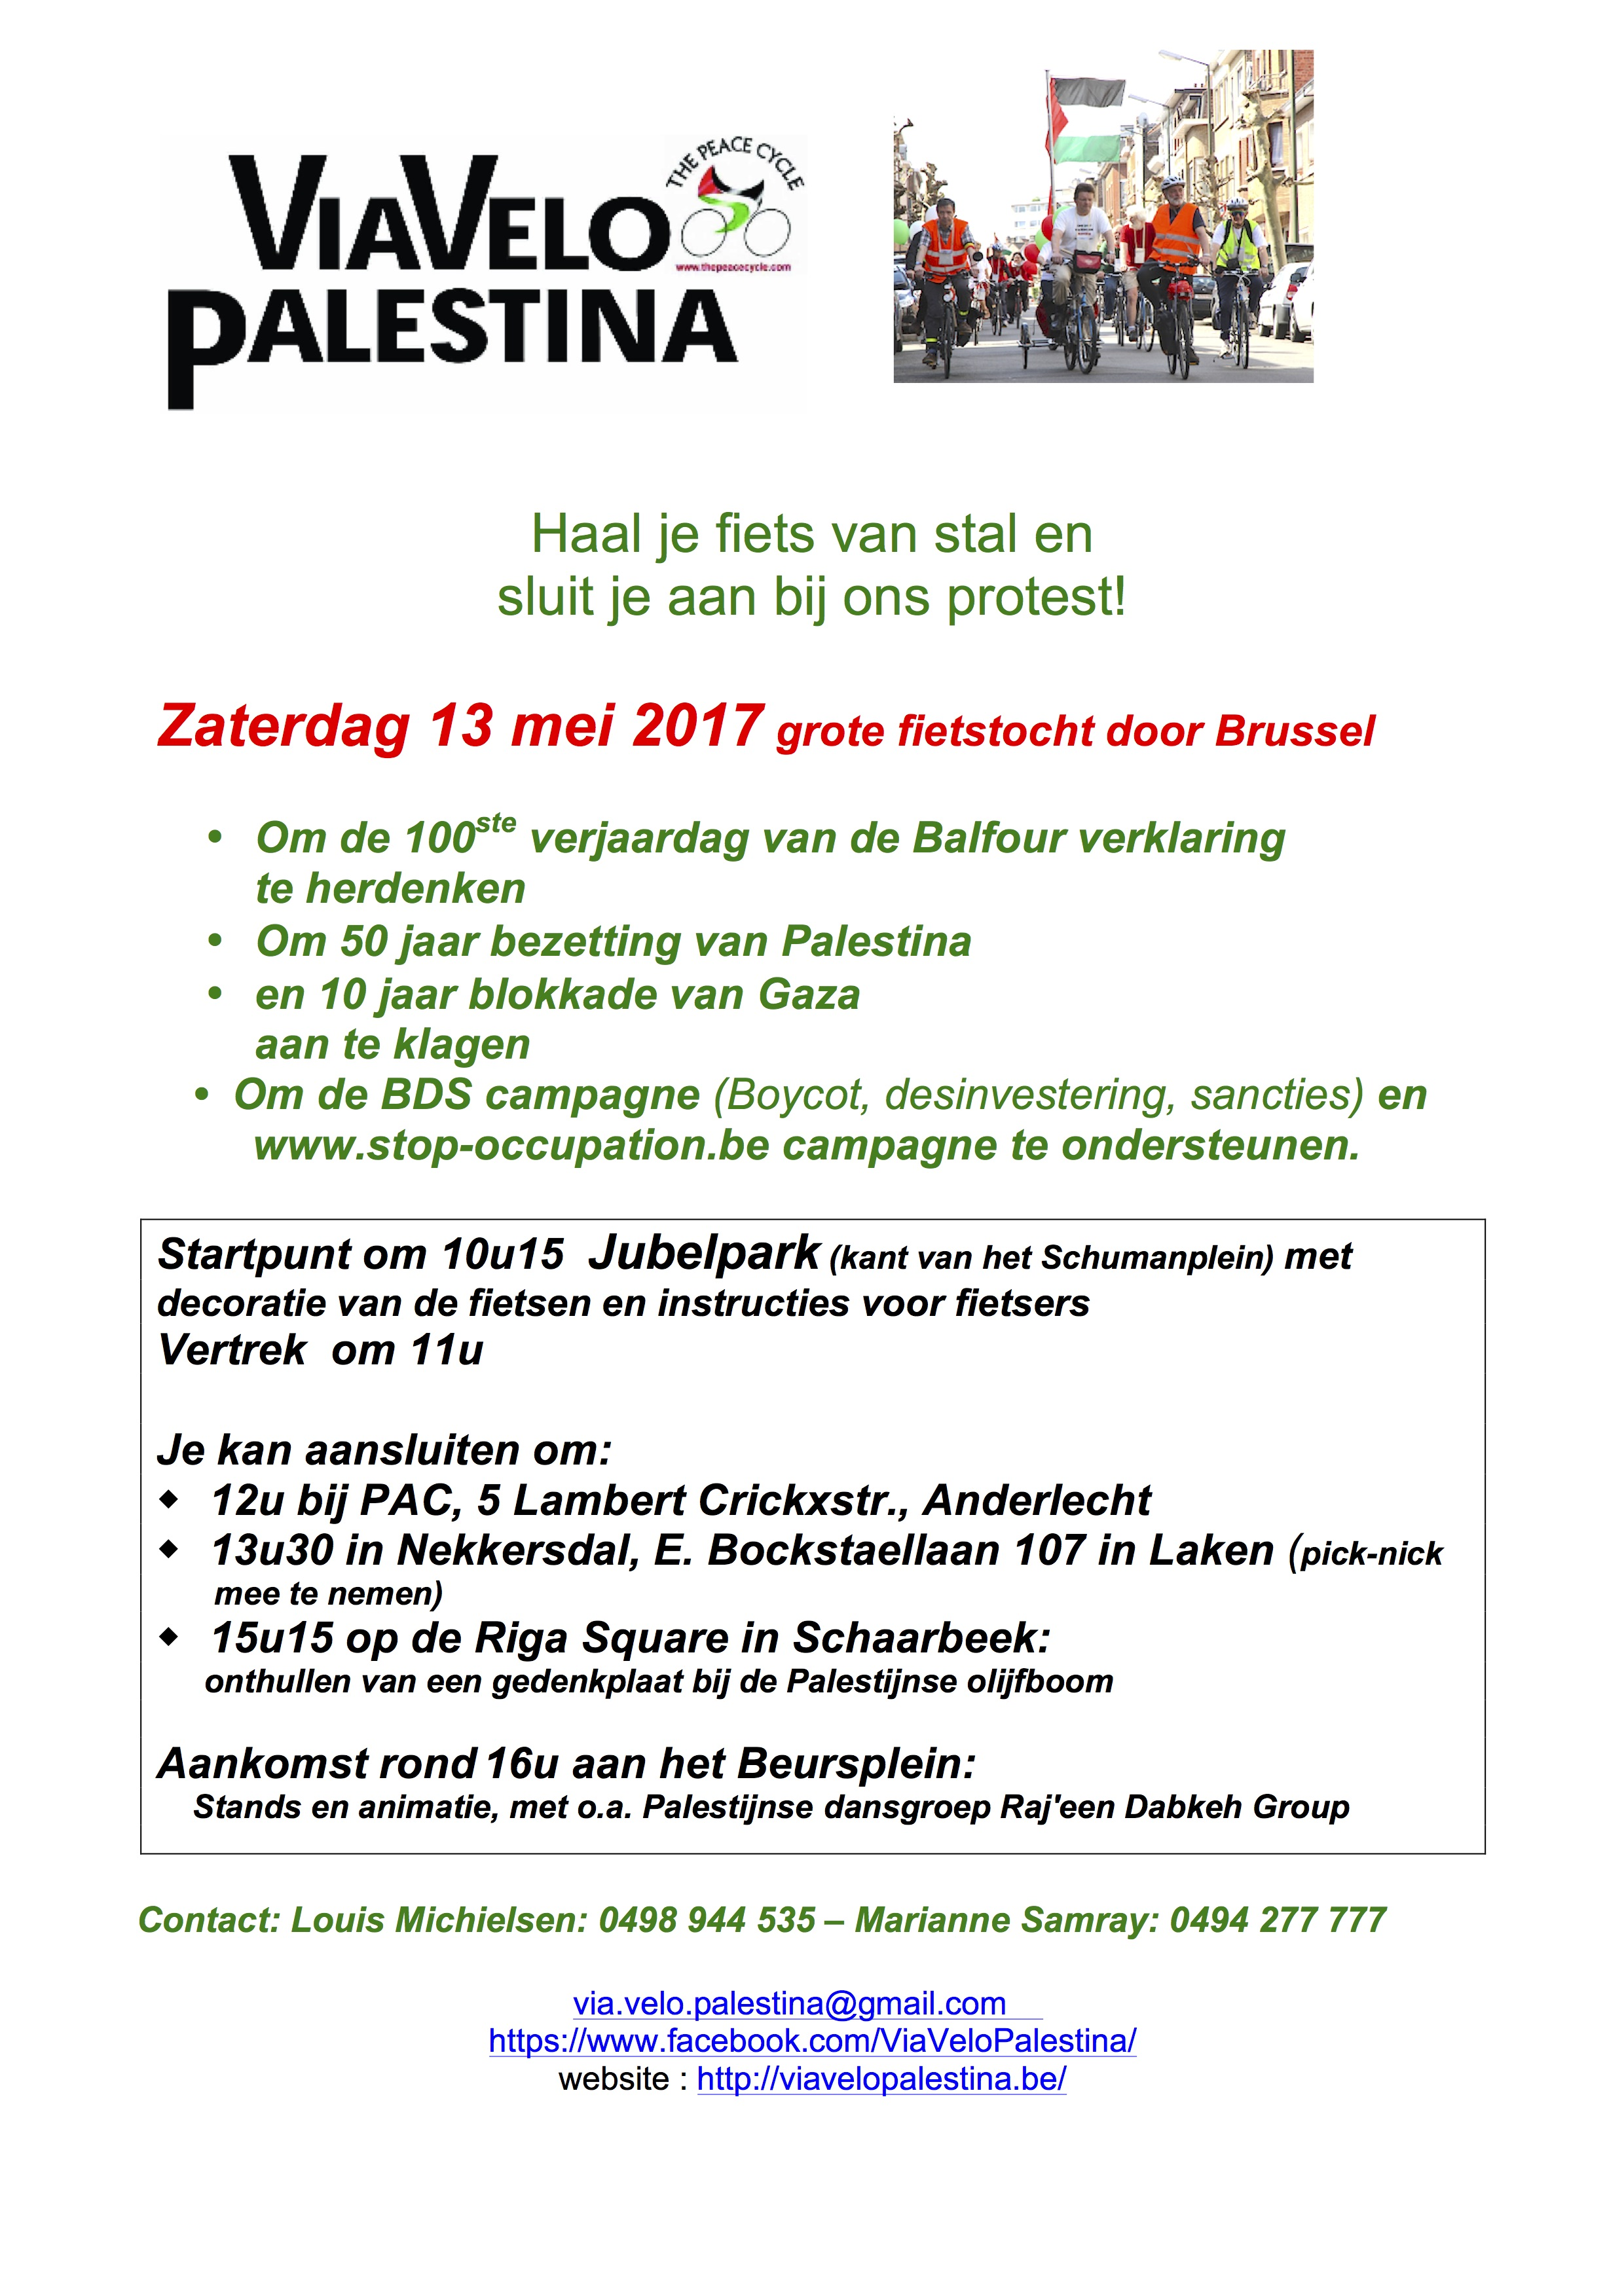 VVP 17 tract NL